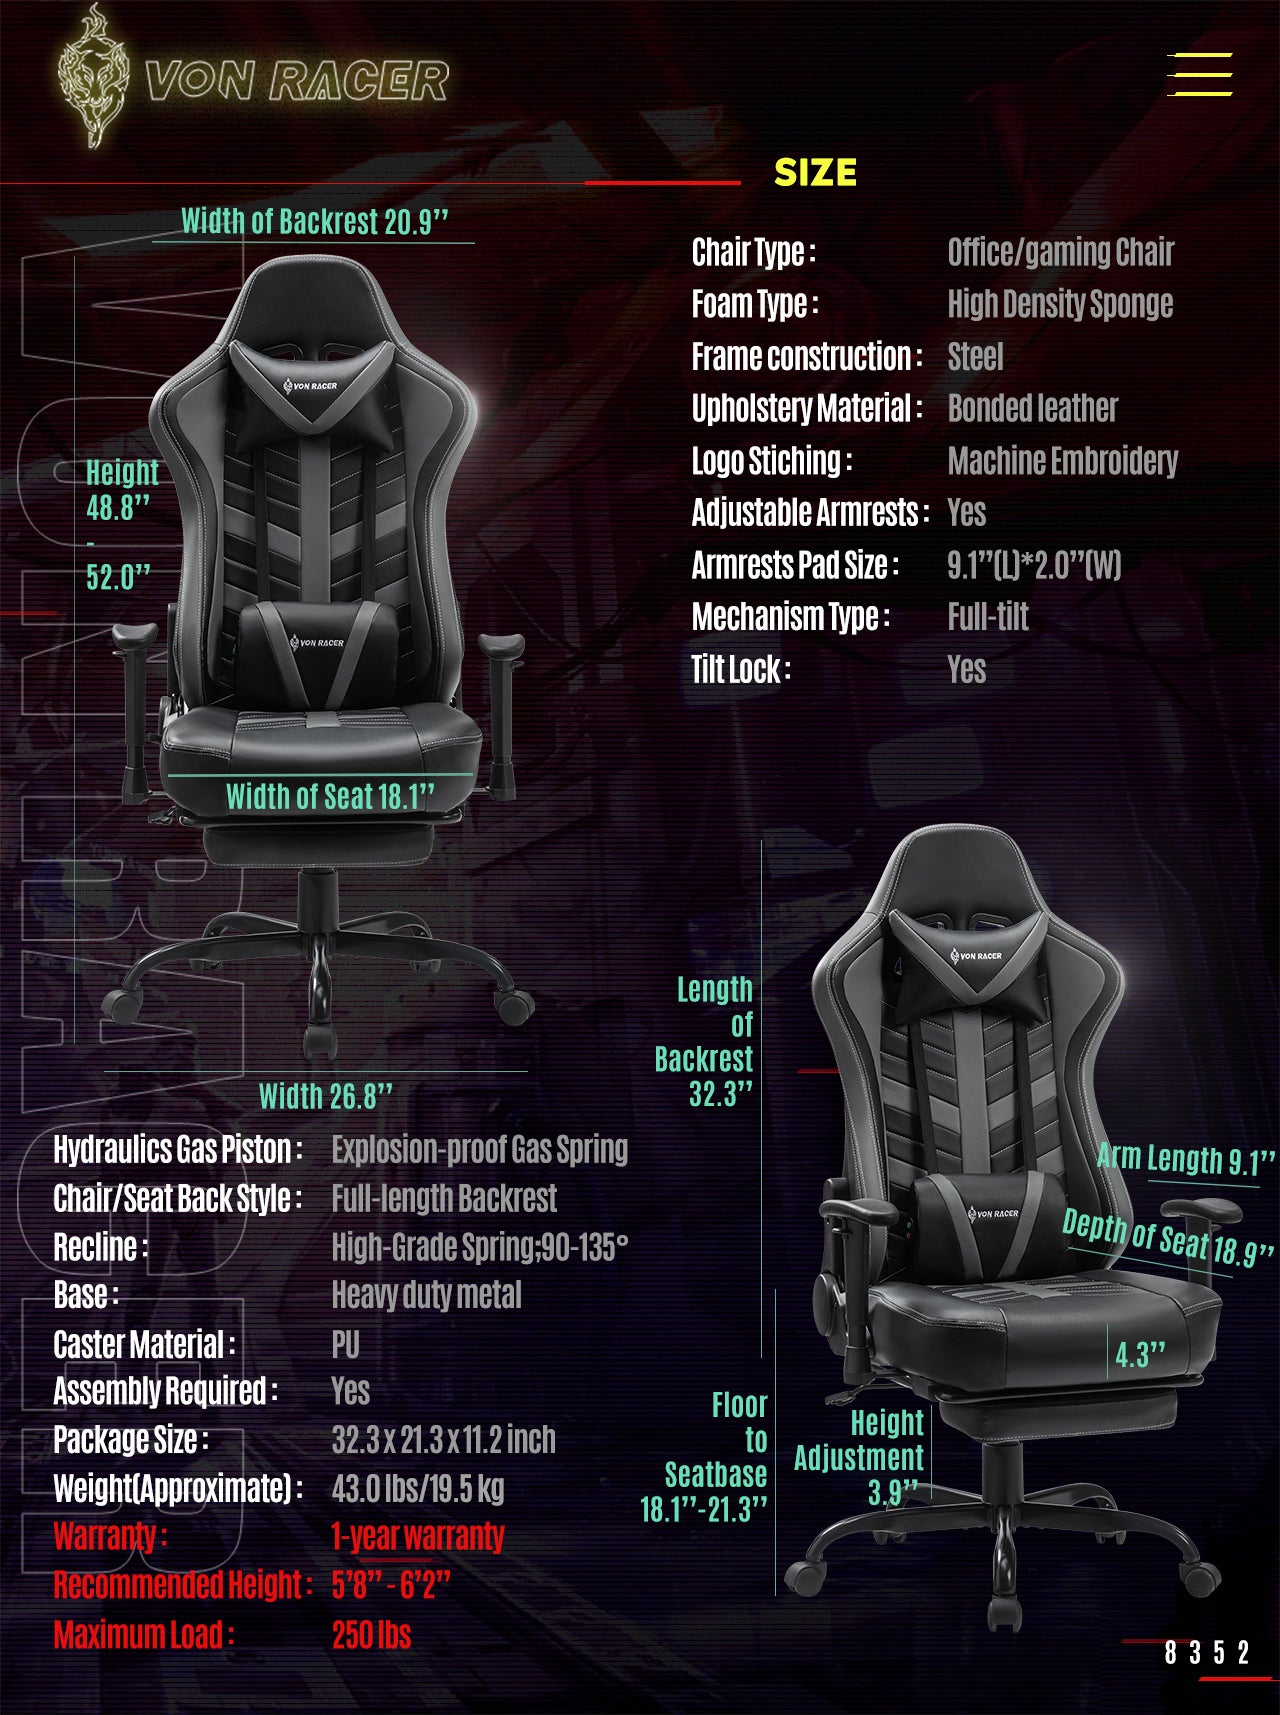 Von Racer Gray Gaming Chair BEETLE 2020 Series Specifications